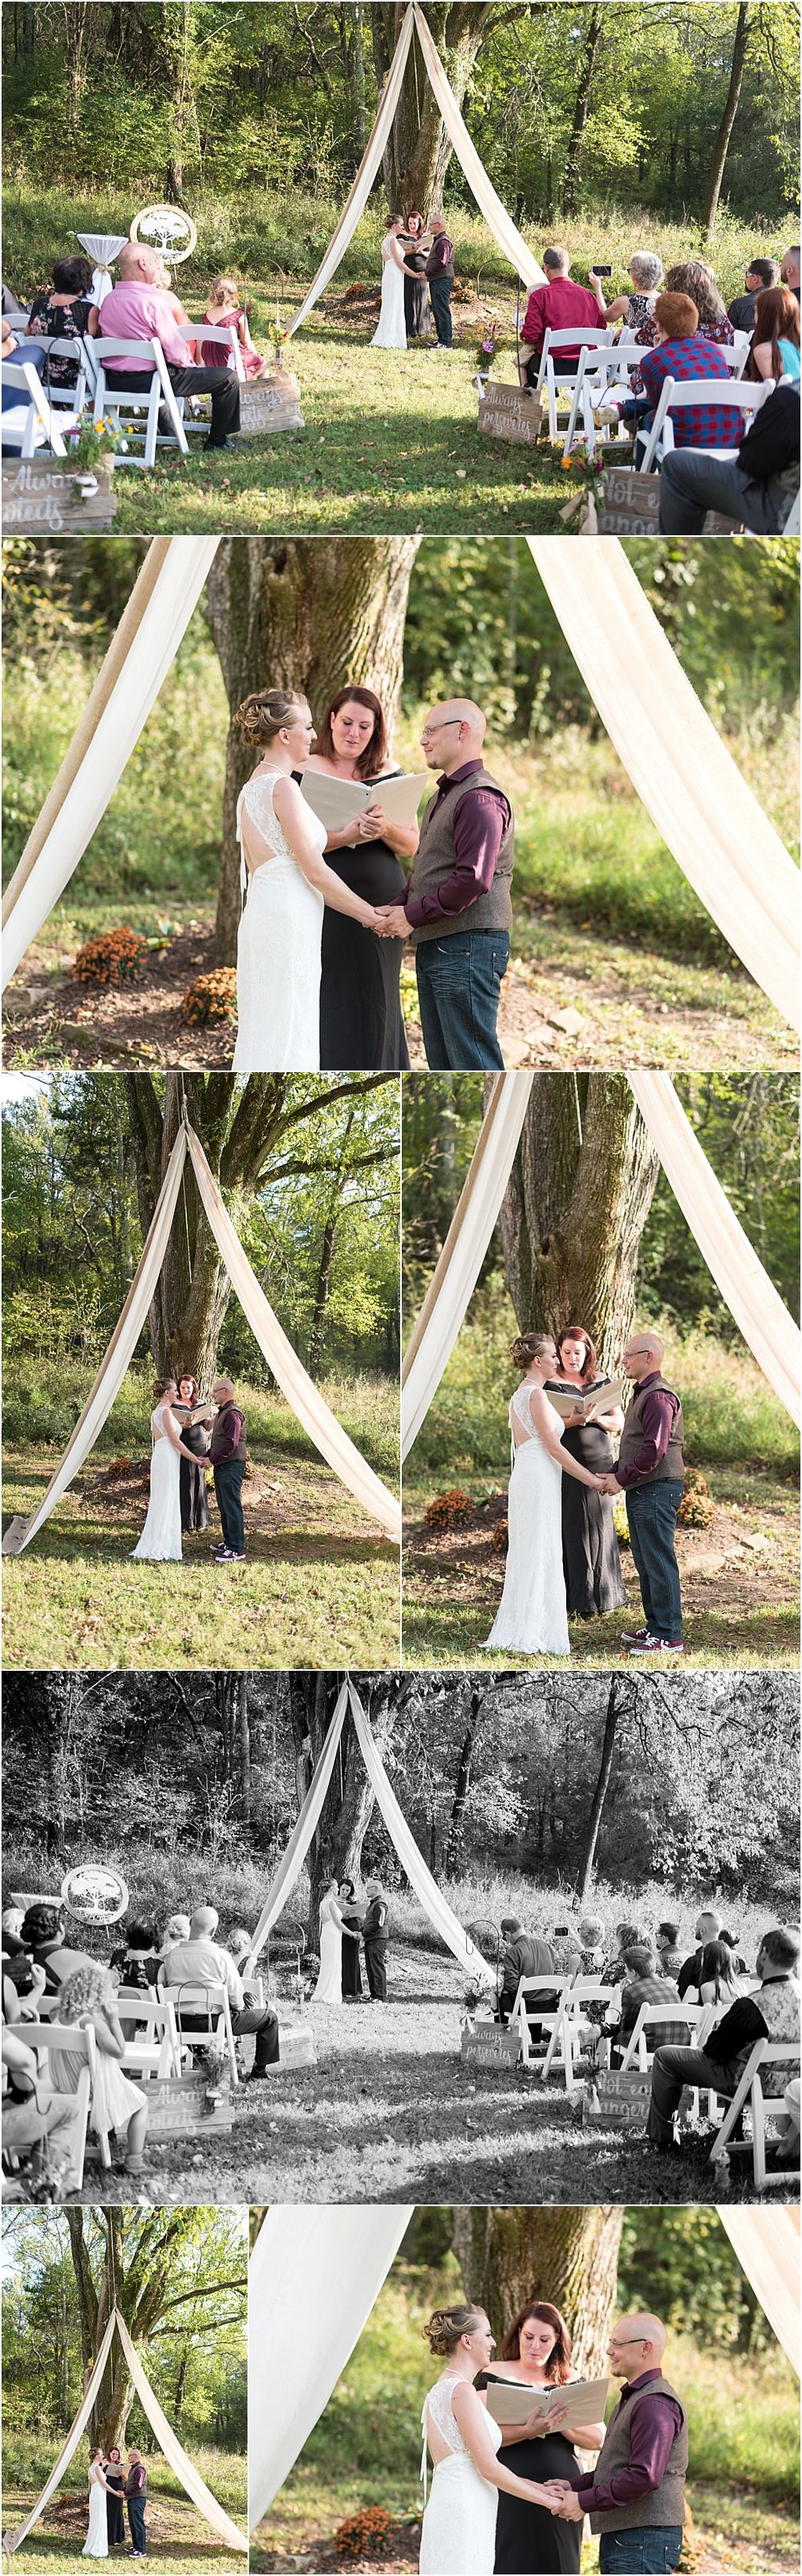 Jacob-and-Misty-Madison-Creek-Farms-Wedding-in-Goodlettsville-TN-Nashville-Wedding-Photographers+3